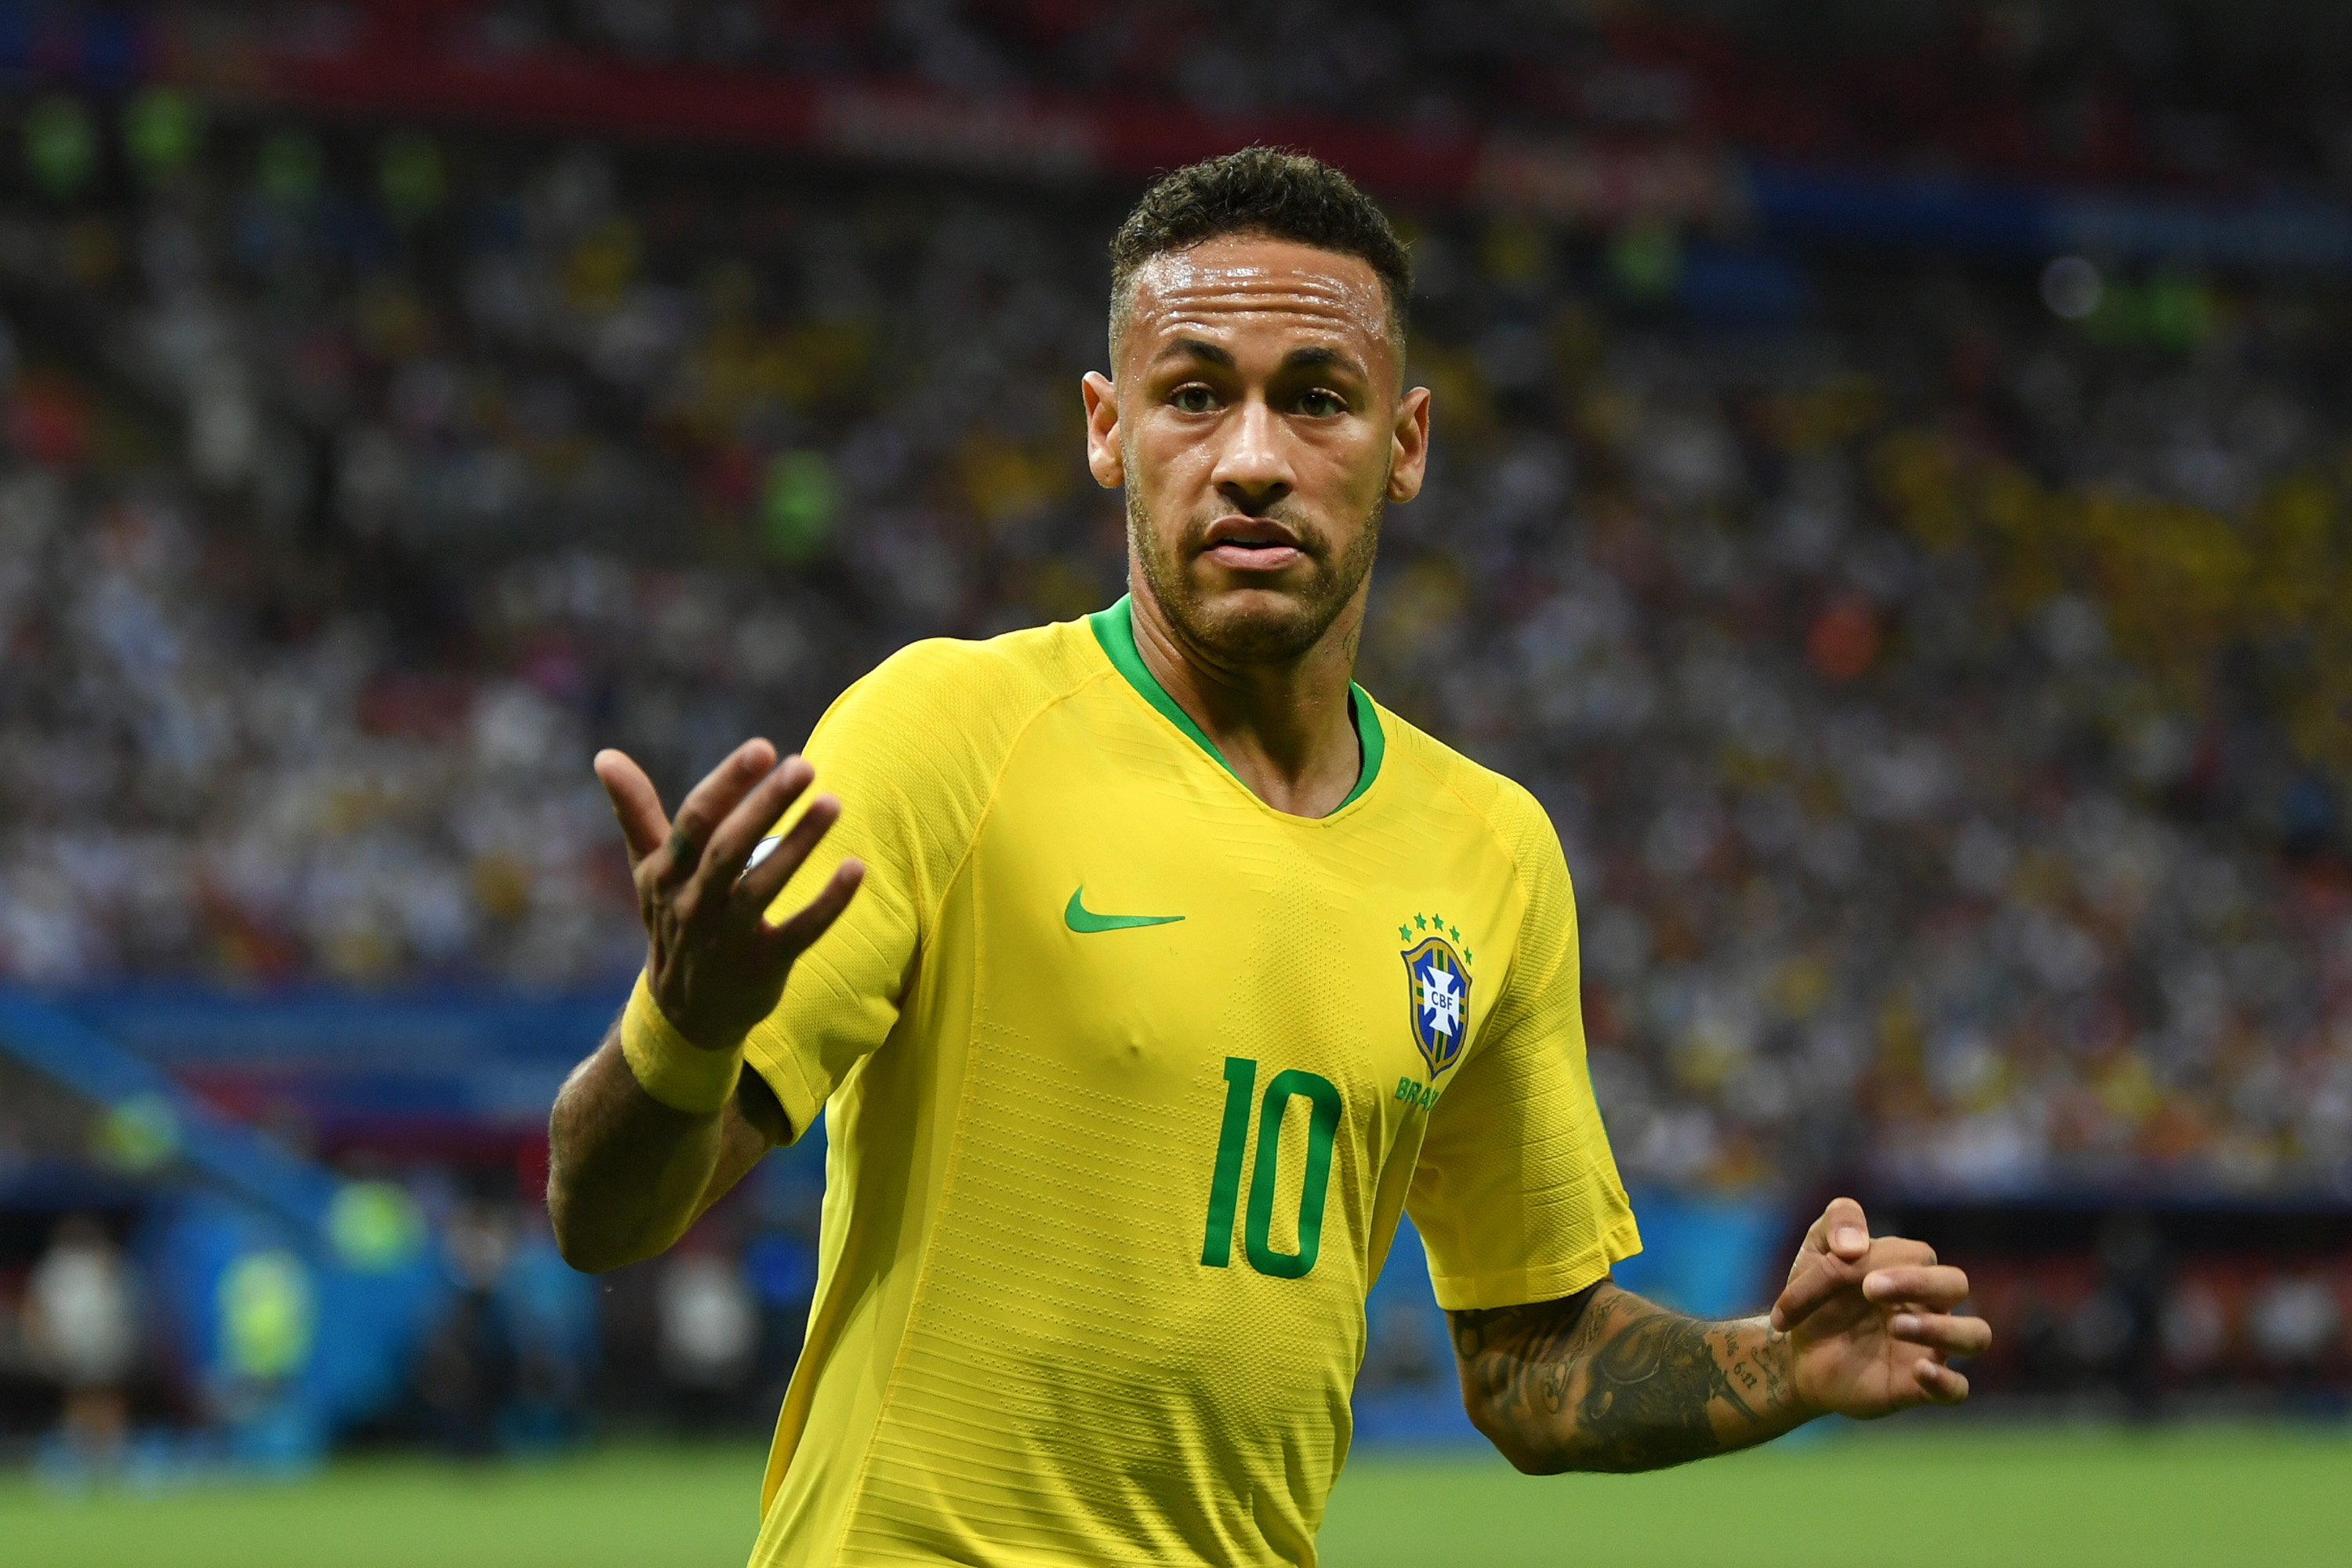 Real Madrid No Busca Neymar Remplazo